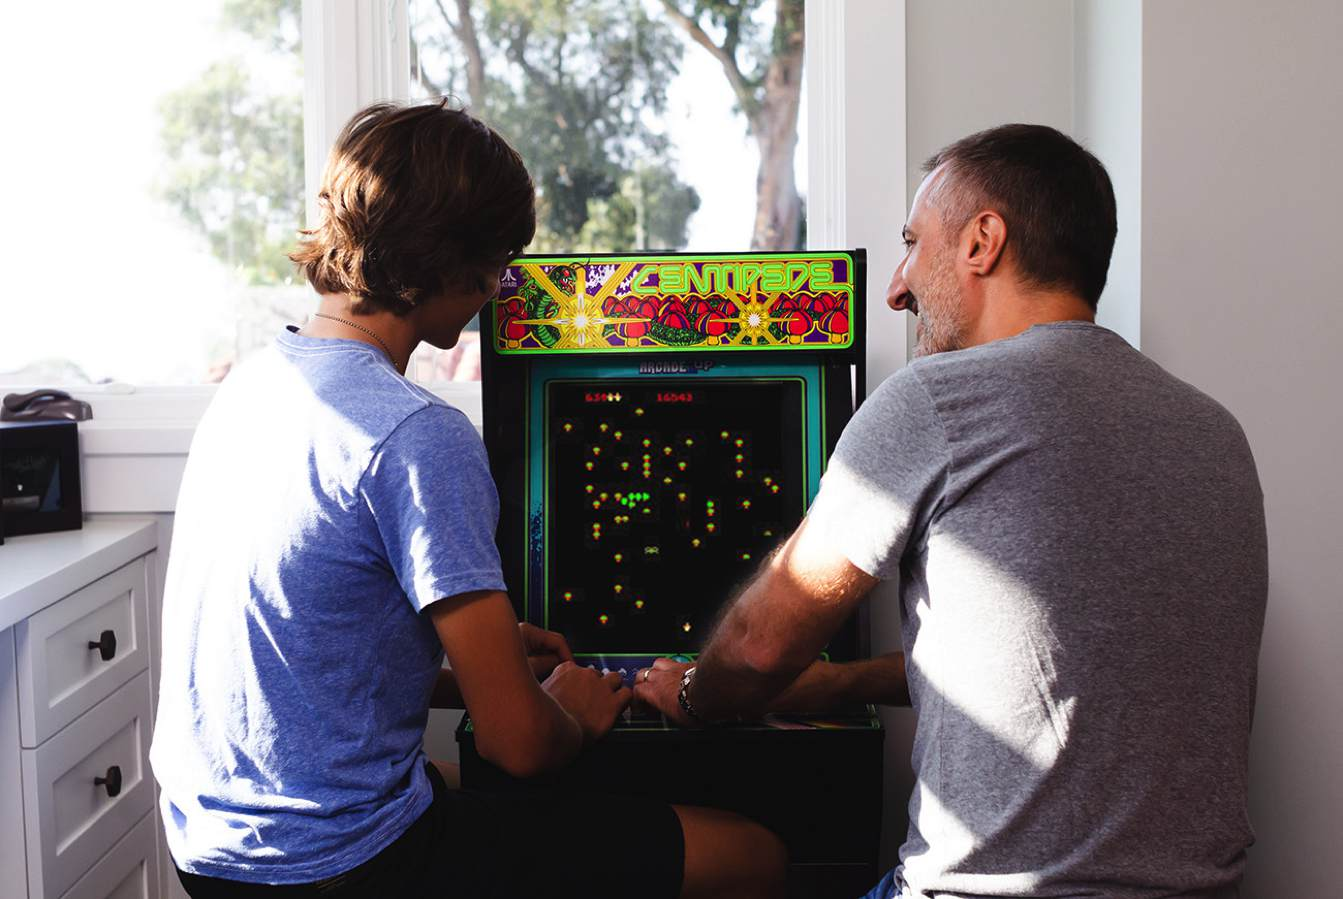 guys playing an arcade